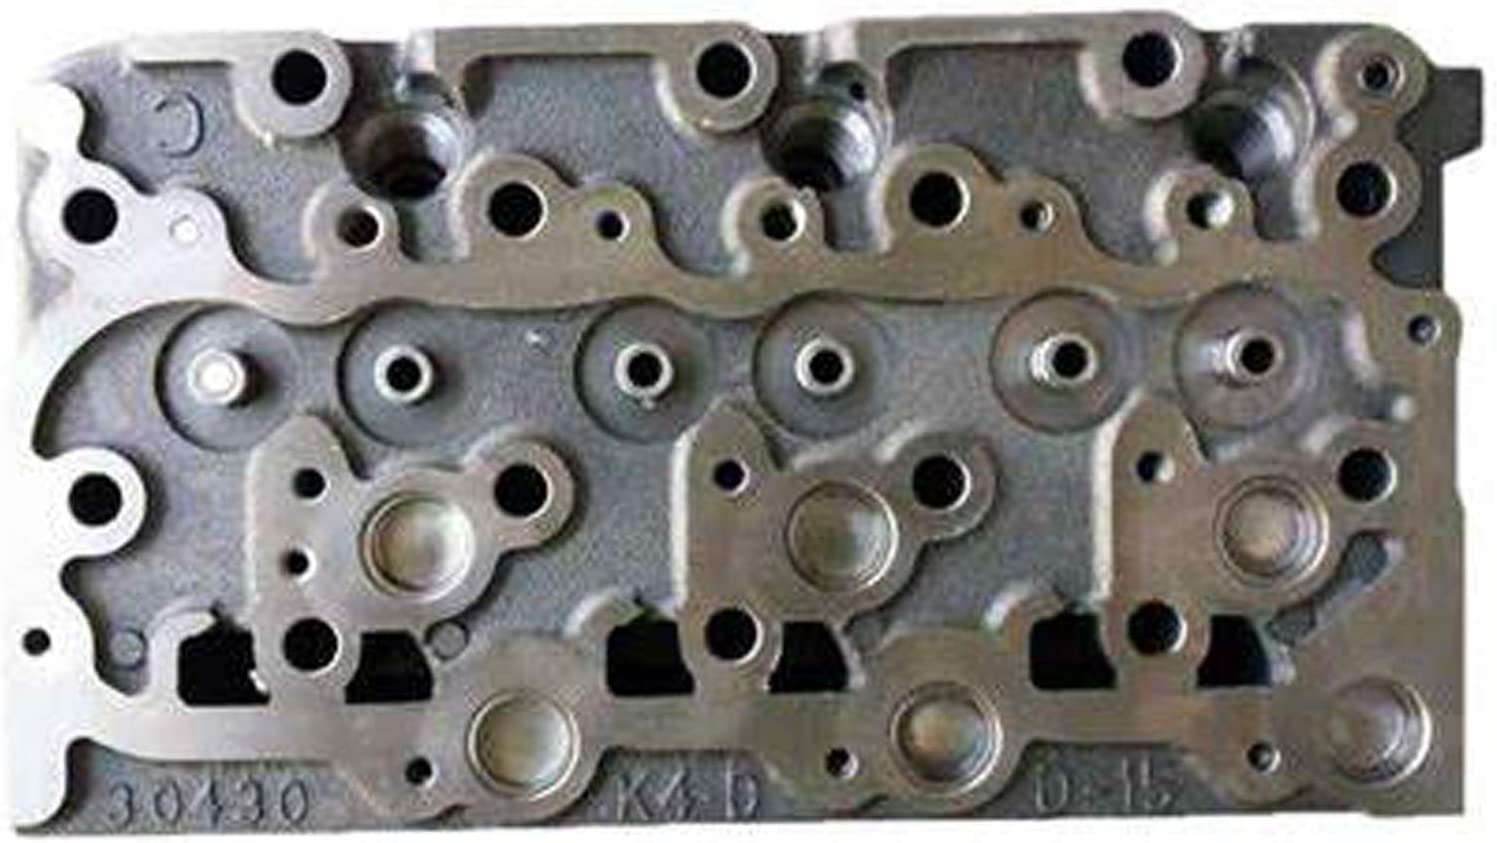 Friday Part Cheap SALE Start Complete Genuine Cylinder Head for Kio Springs Valves with